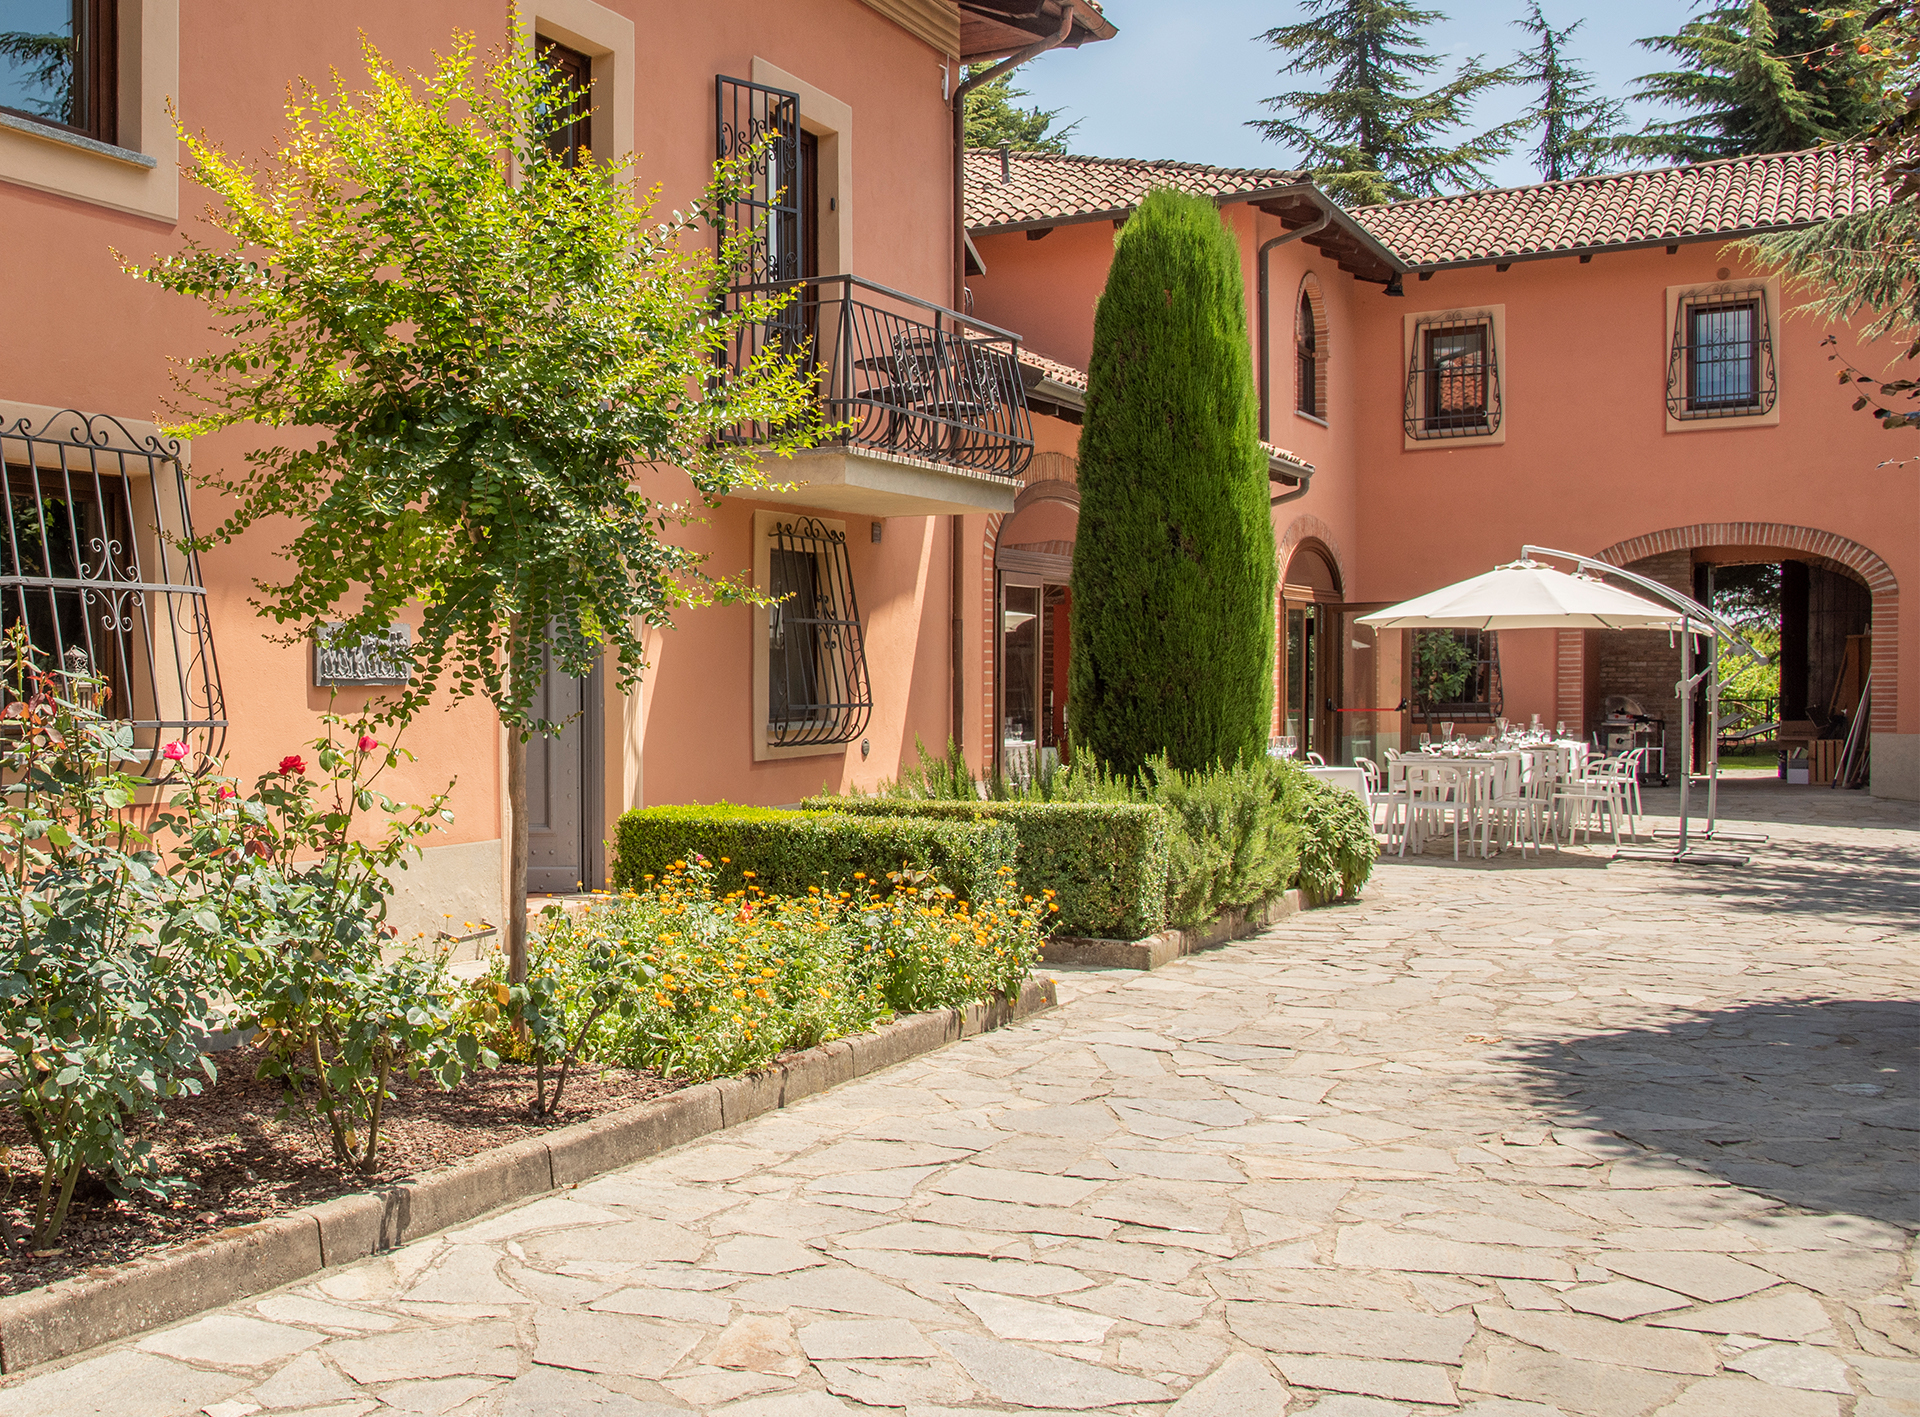 La Guest House Giarvino